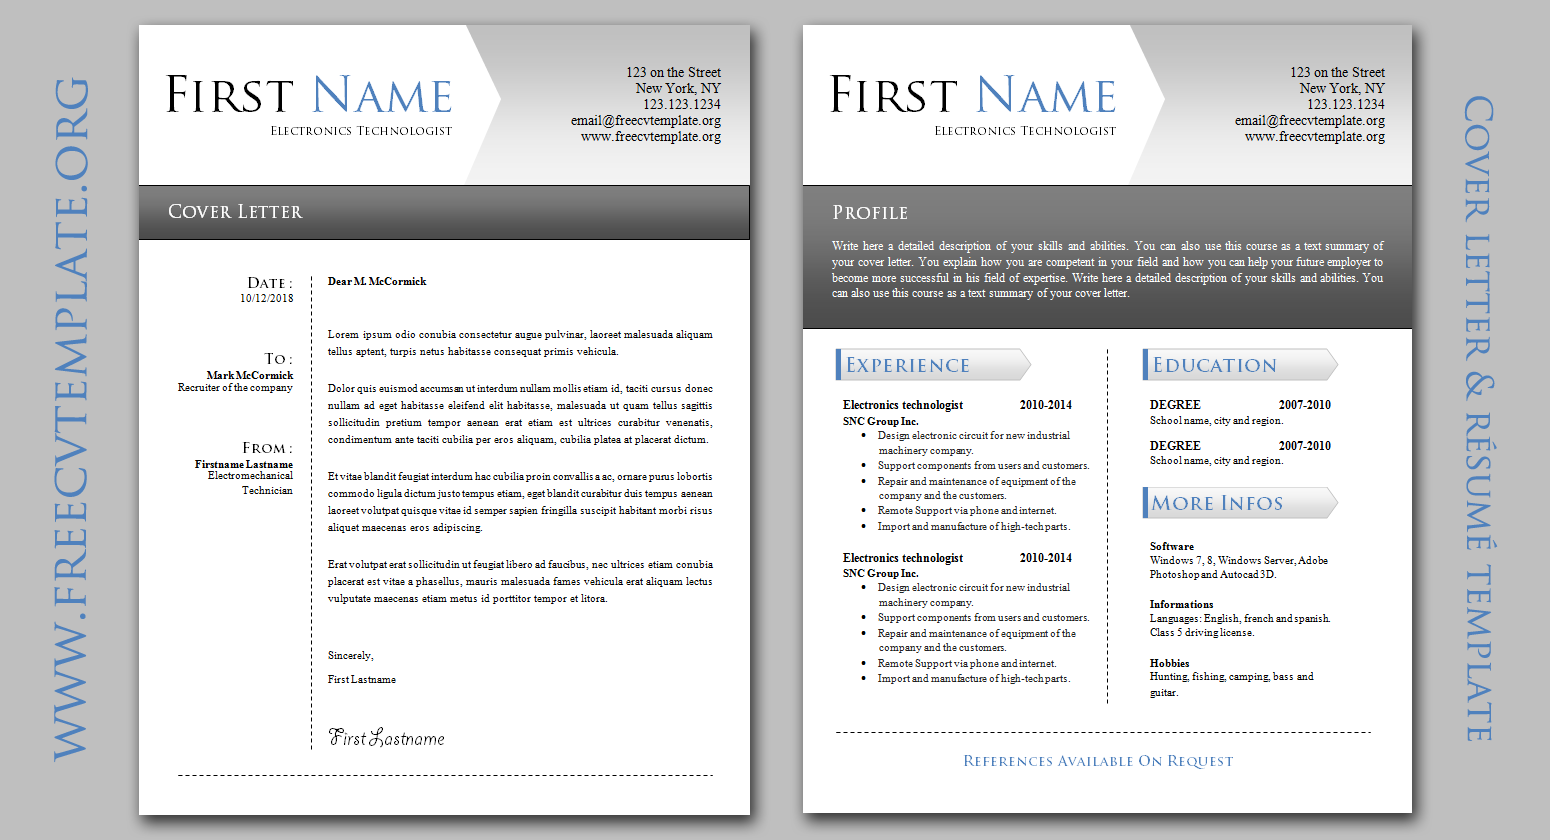 Cover Letter For A Resume Template from www.getafreecv.com